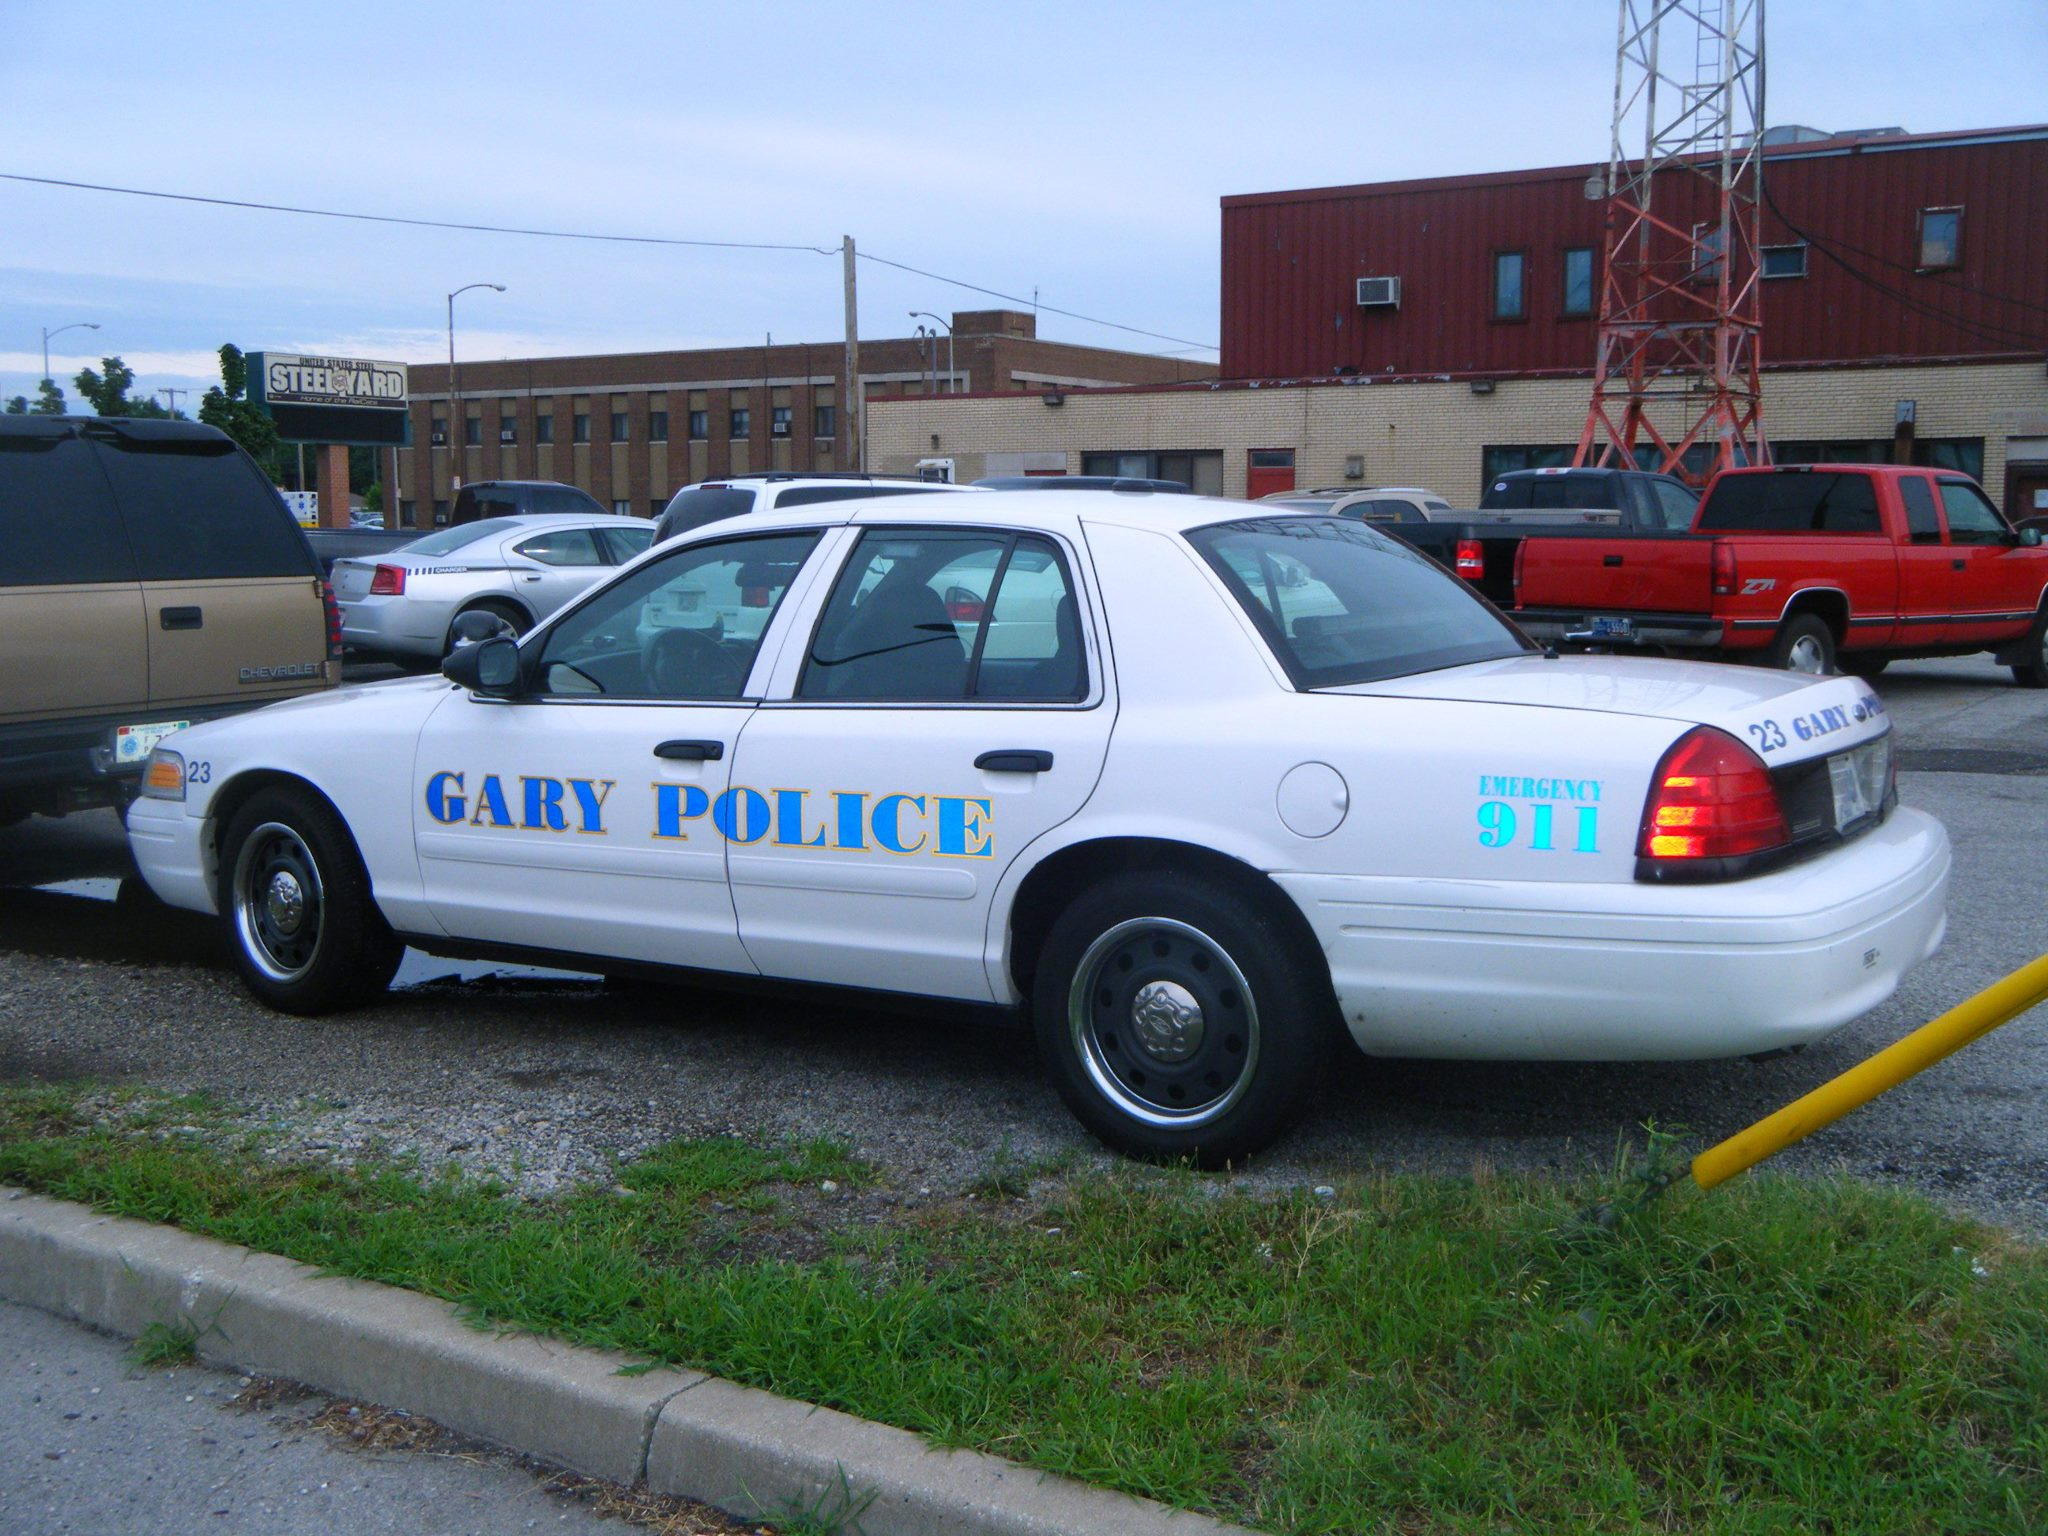 A man died July 1, 2020, after being shot in Gary, Indiana.